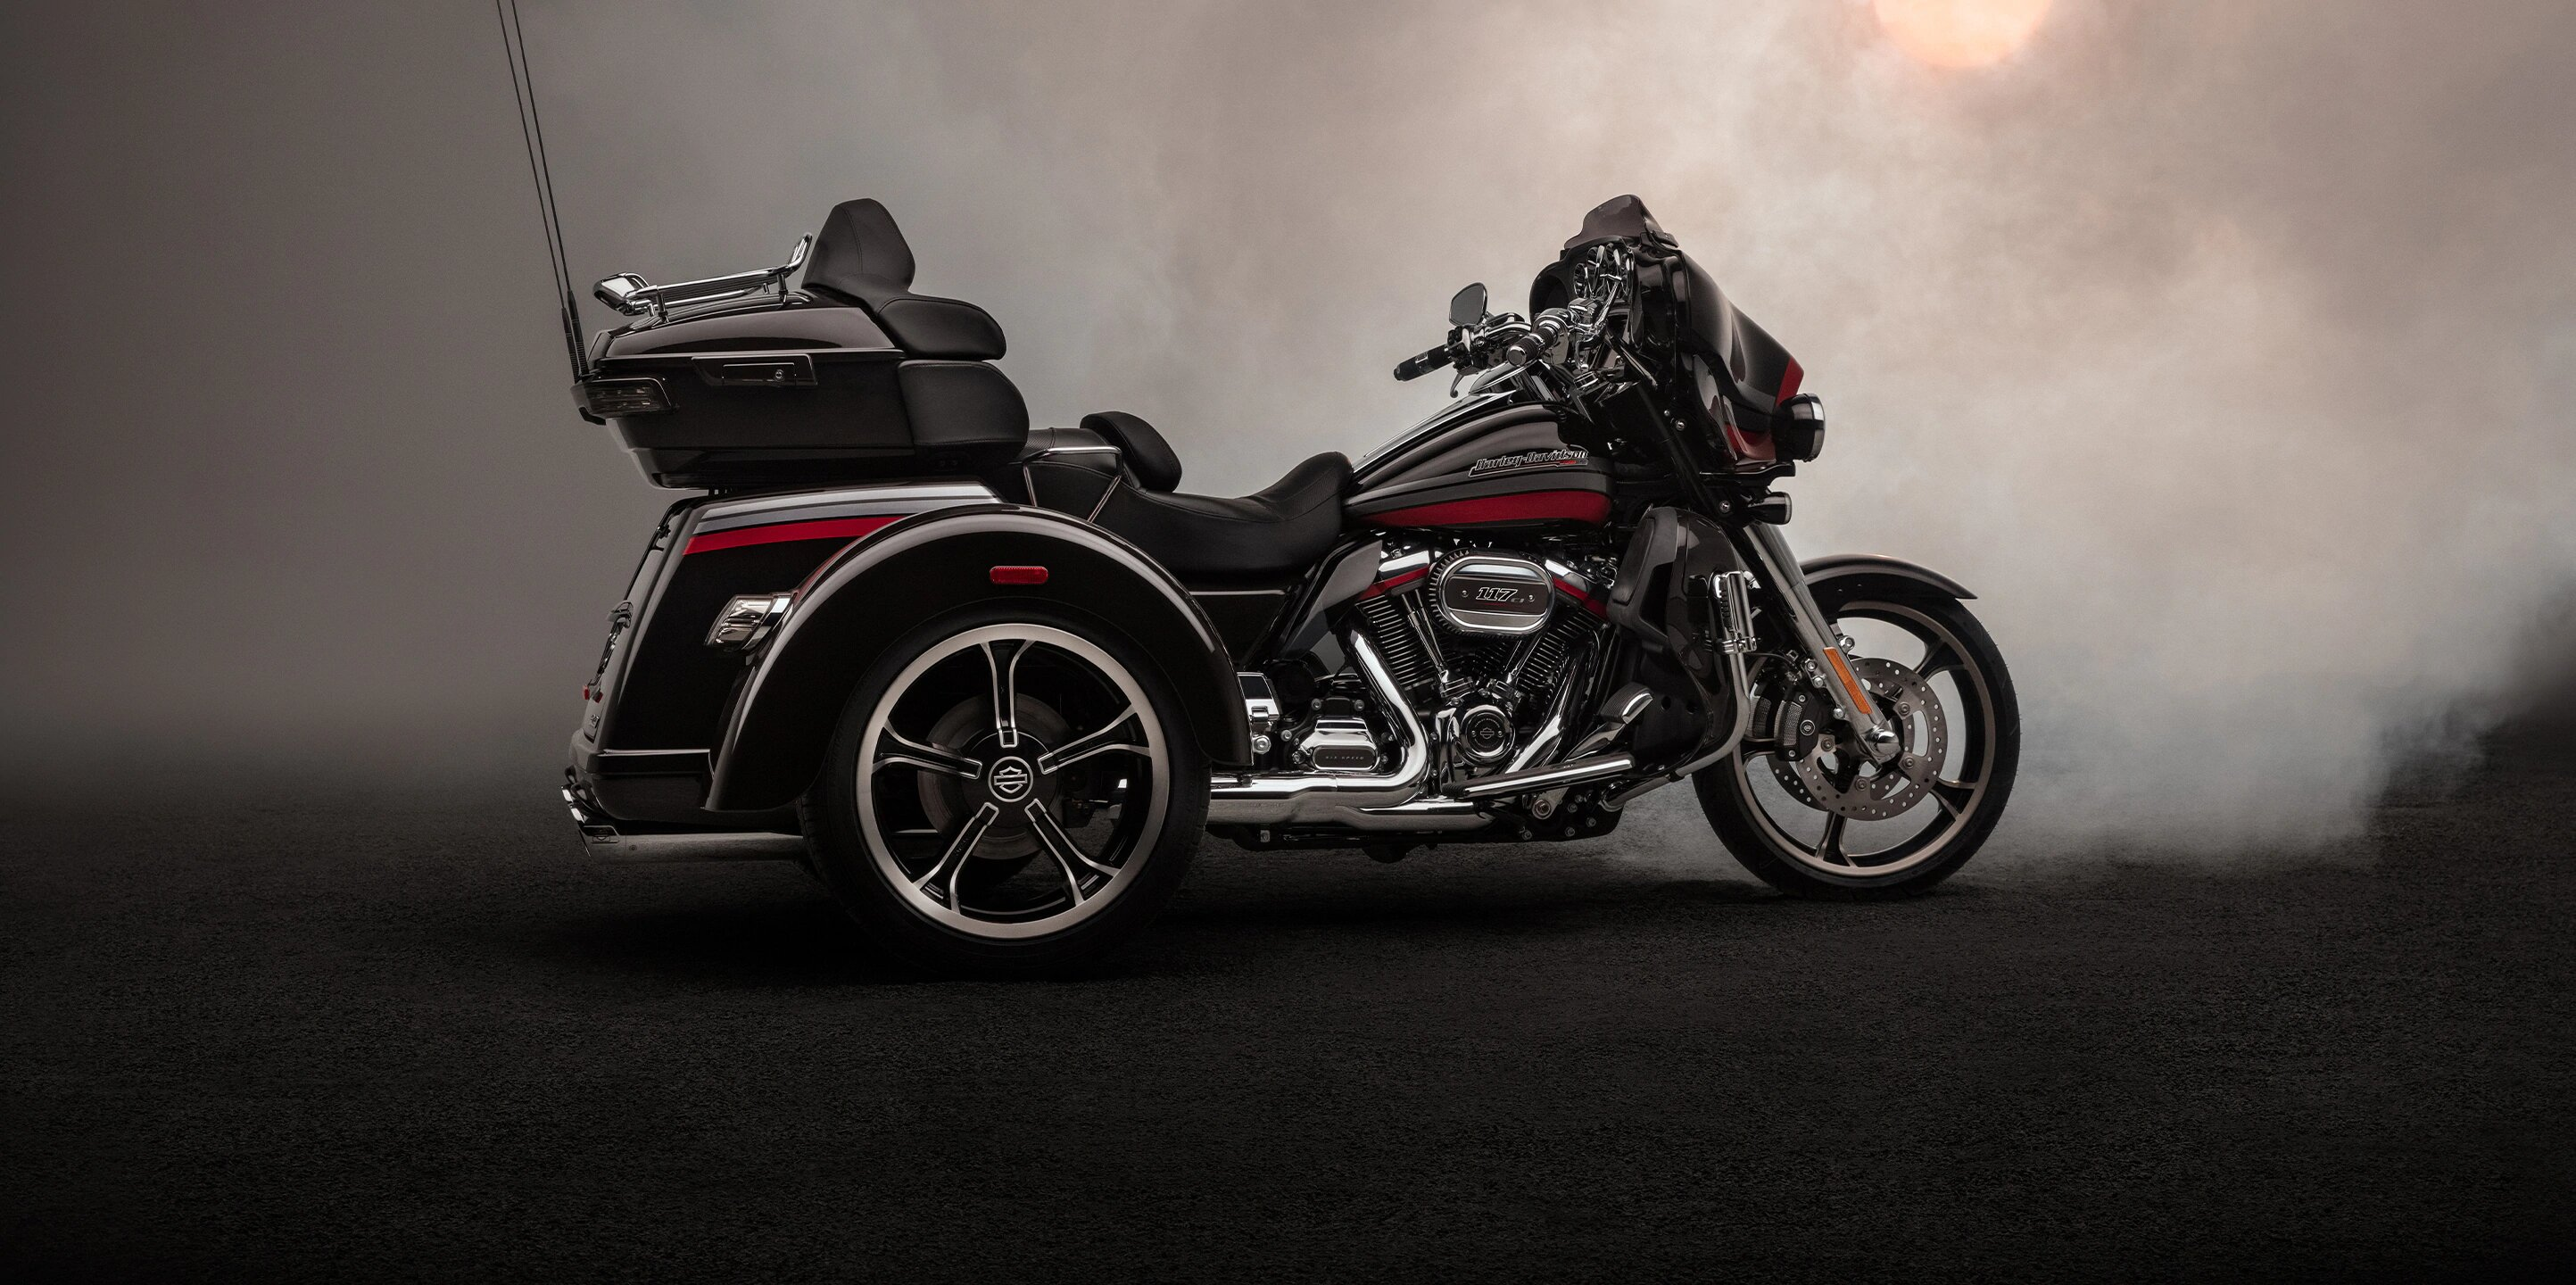 Harley Davidson 2020 Cvo Tri Glide For Sale At Sy S Harley Davidson In Campbelltown Nsw Specifications And Review Information